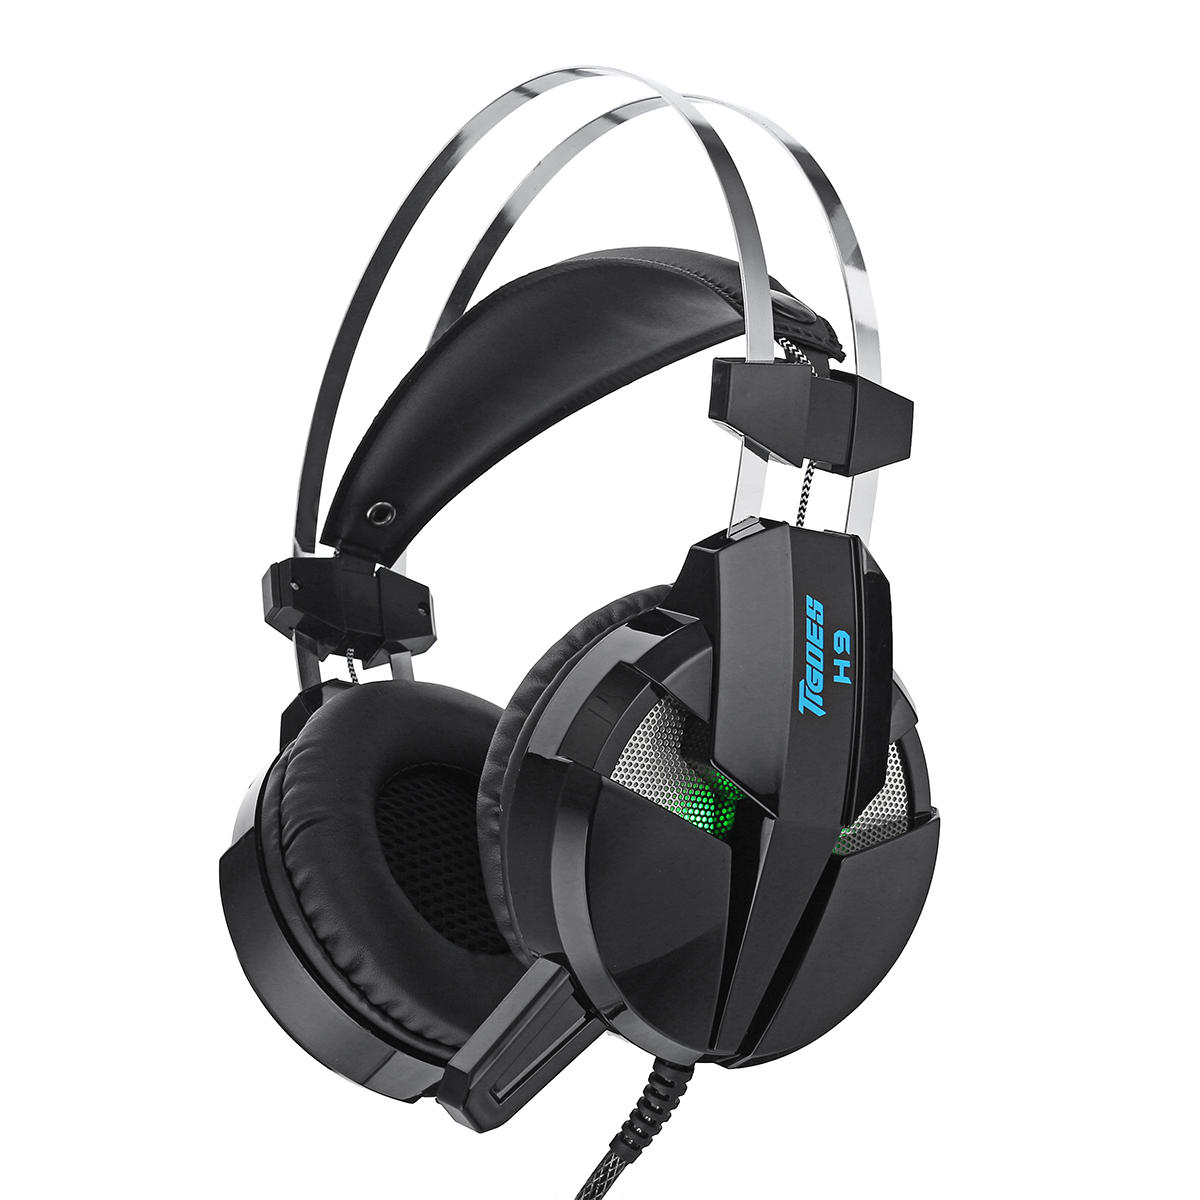 hight resolution of misde h9 gaming headphone headset led light stereo noise cancelling headphone with mic black b cod